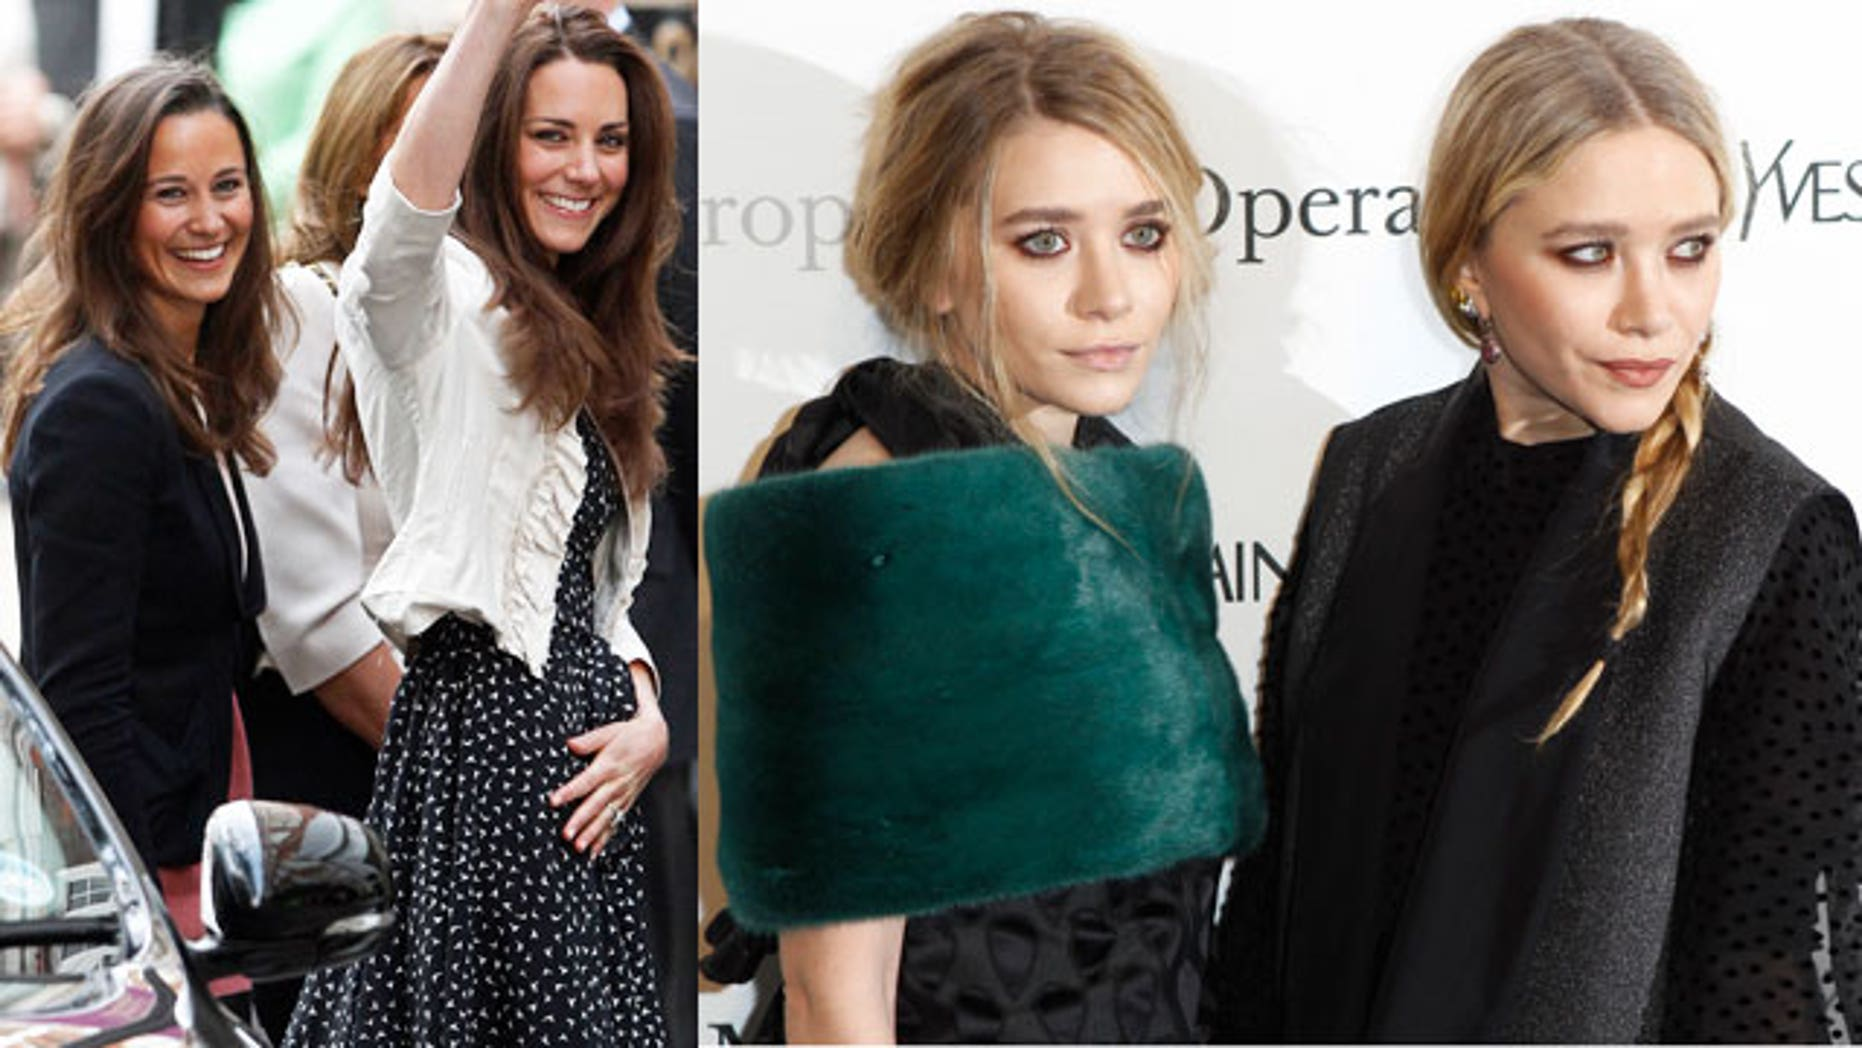 Mary Kate and Ashley Olsen beat out Kate and Pippa Middleton.